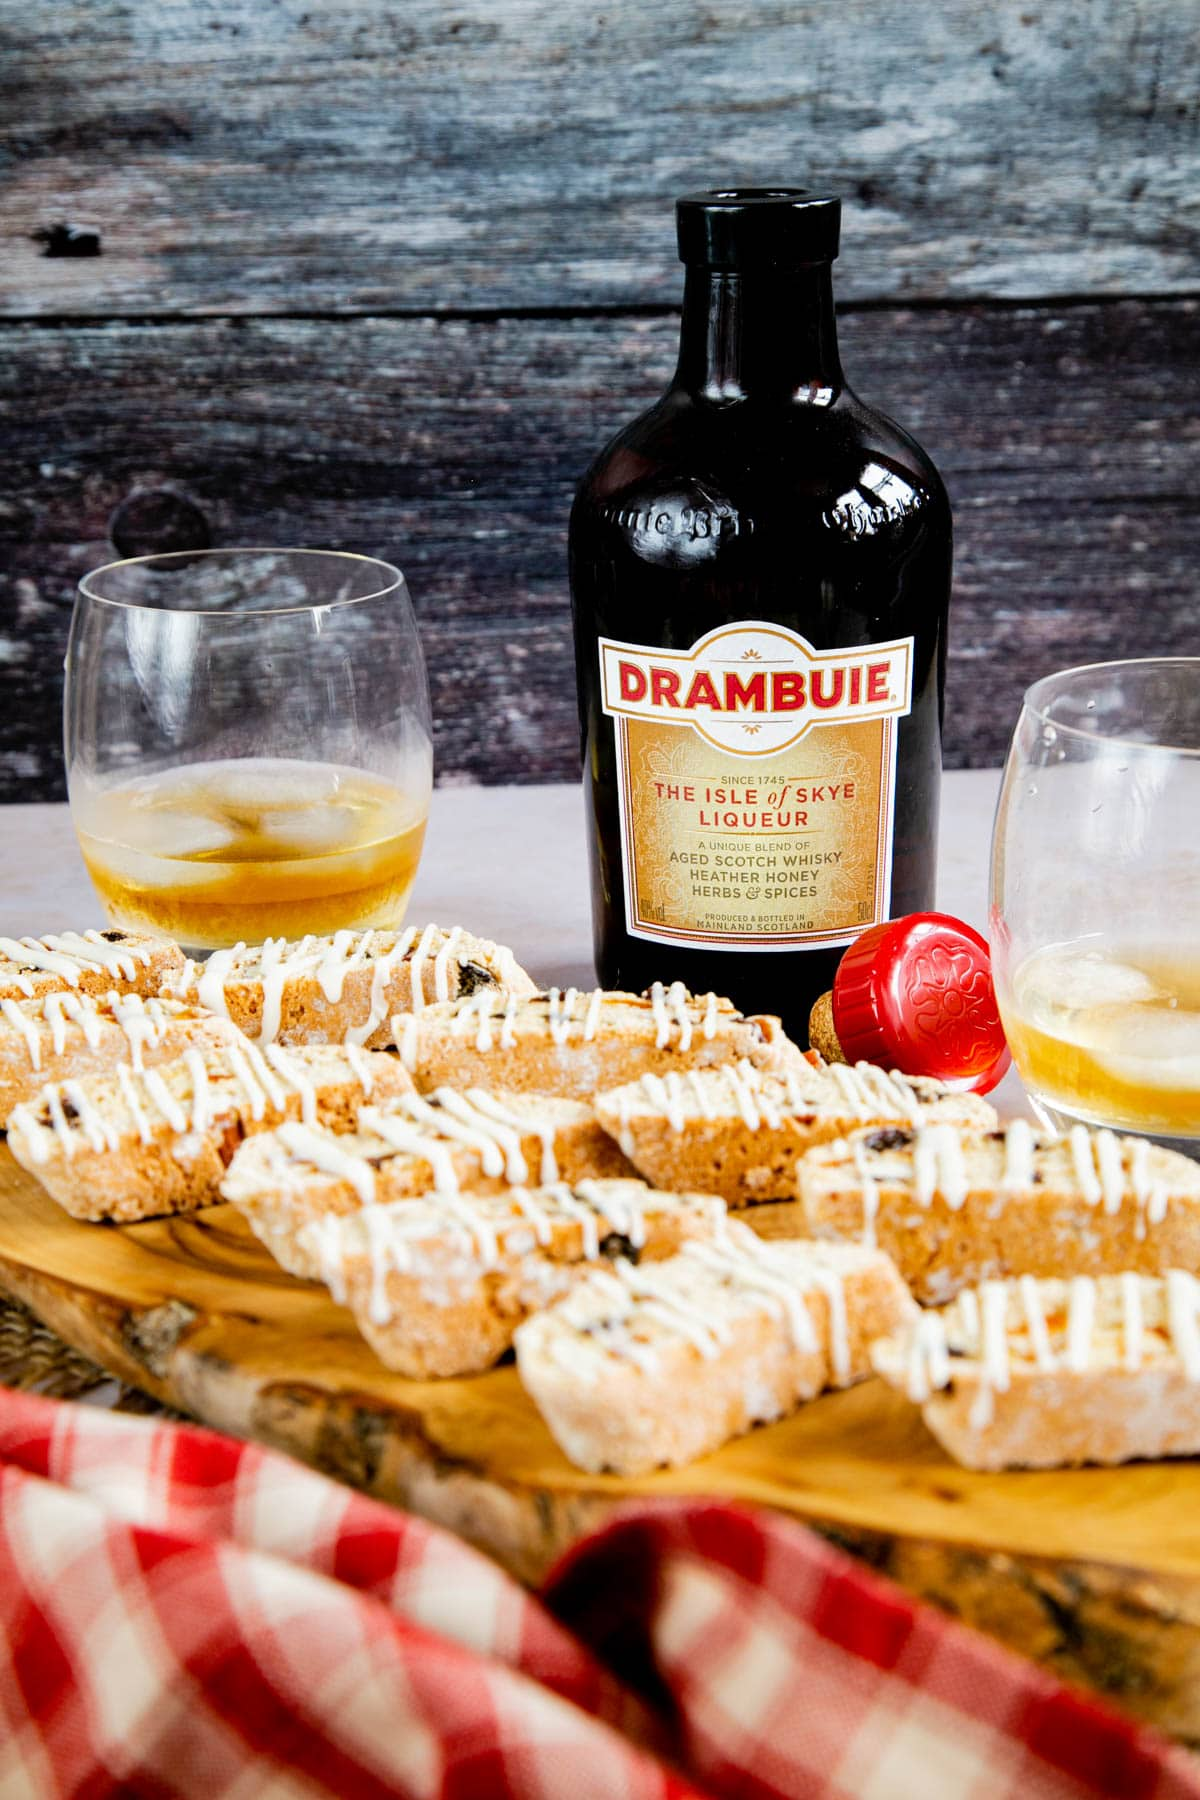 Pieces of Drambuie glazed biscotti on a wooden board, with a bottle and glass of the liqueur standing in the background.